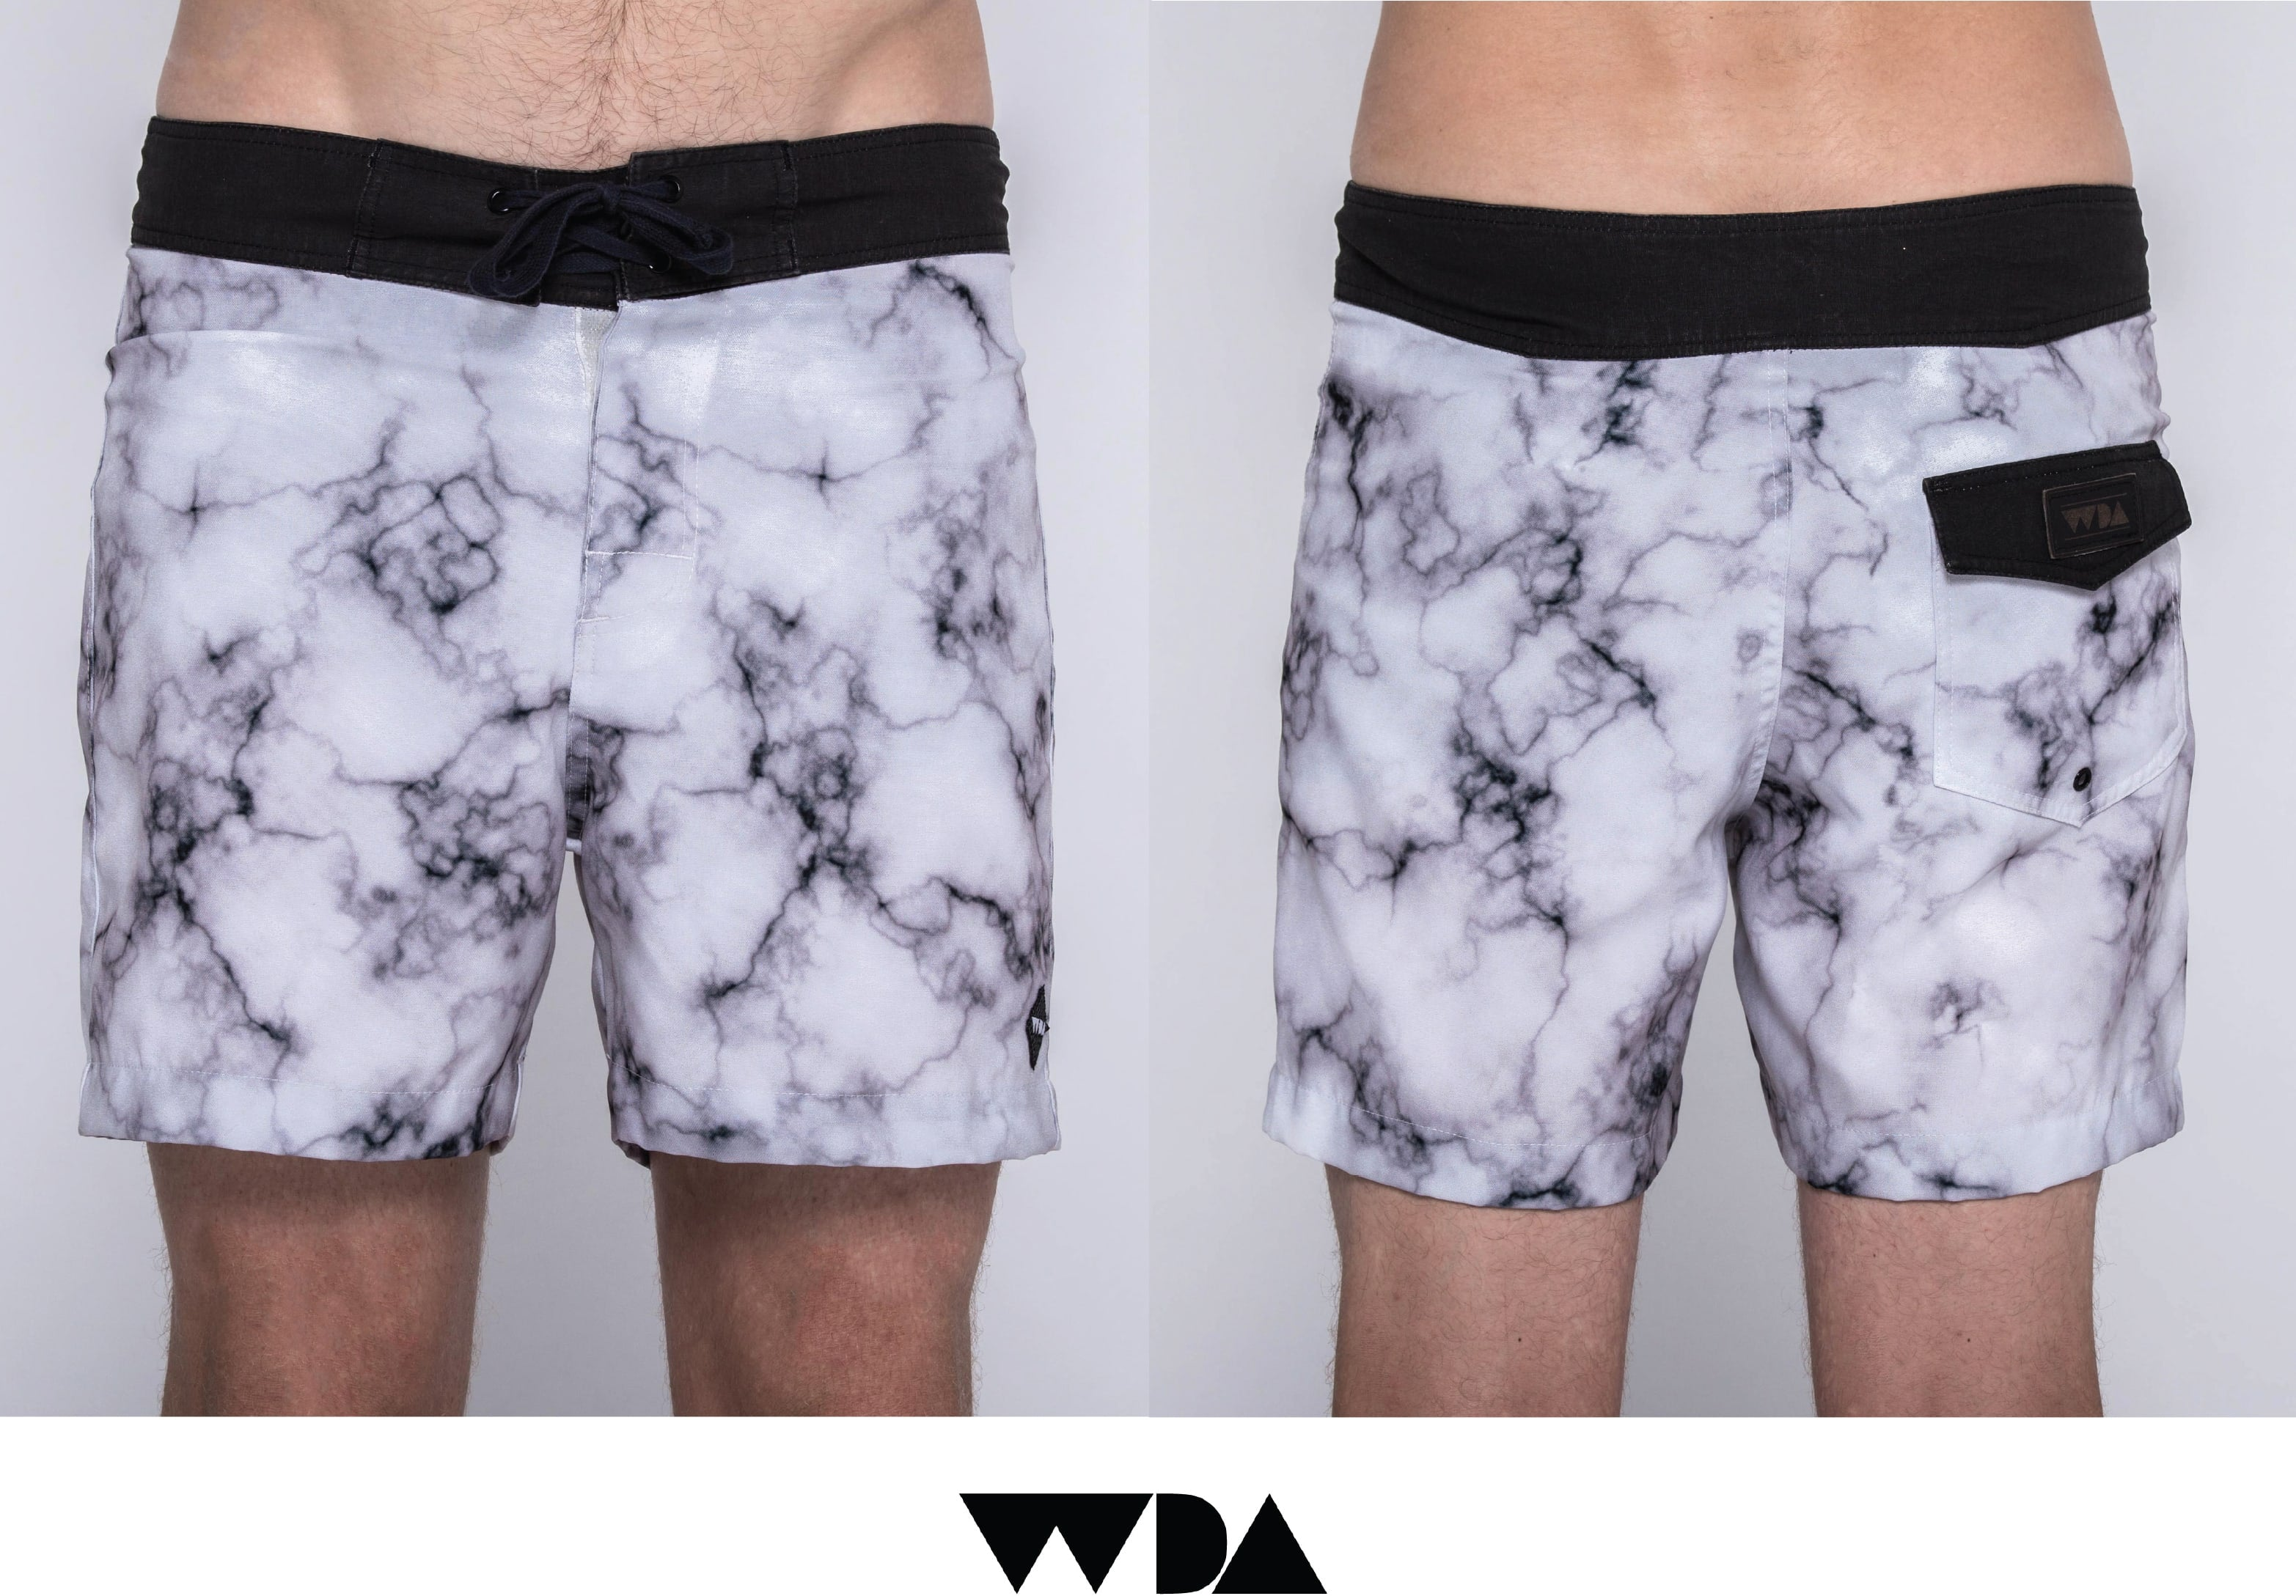 WDA, WE DREAM ALONE, CLOTHING, APPAREL, MENS, BOARDSHORTS, MARBLE, WHITE, BLACK